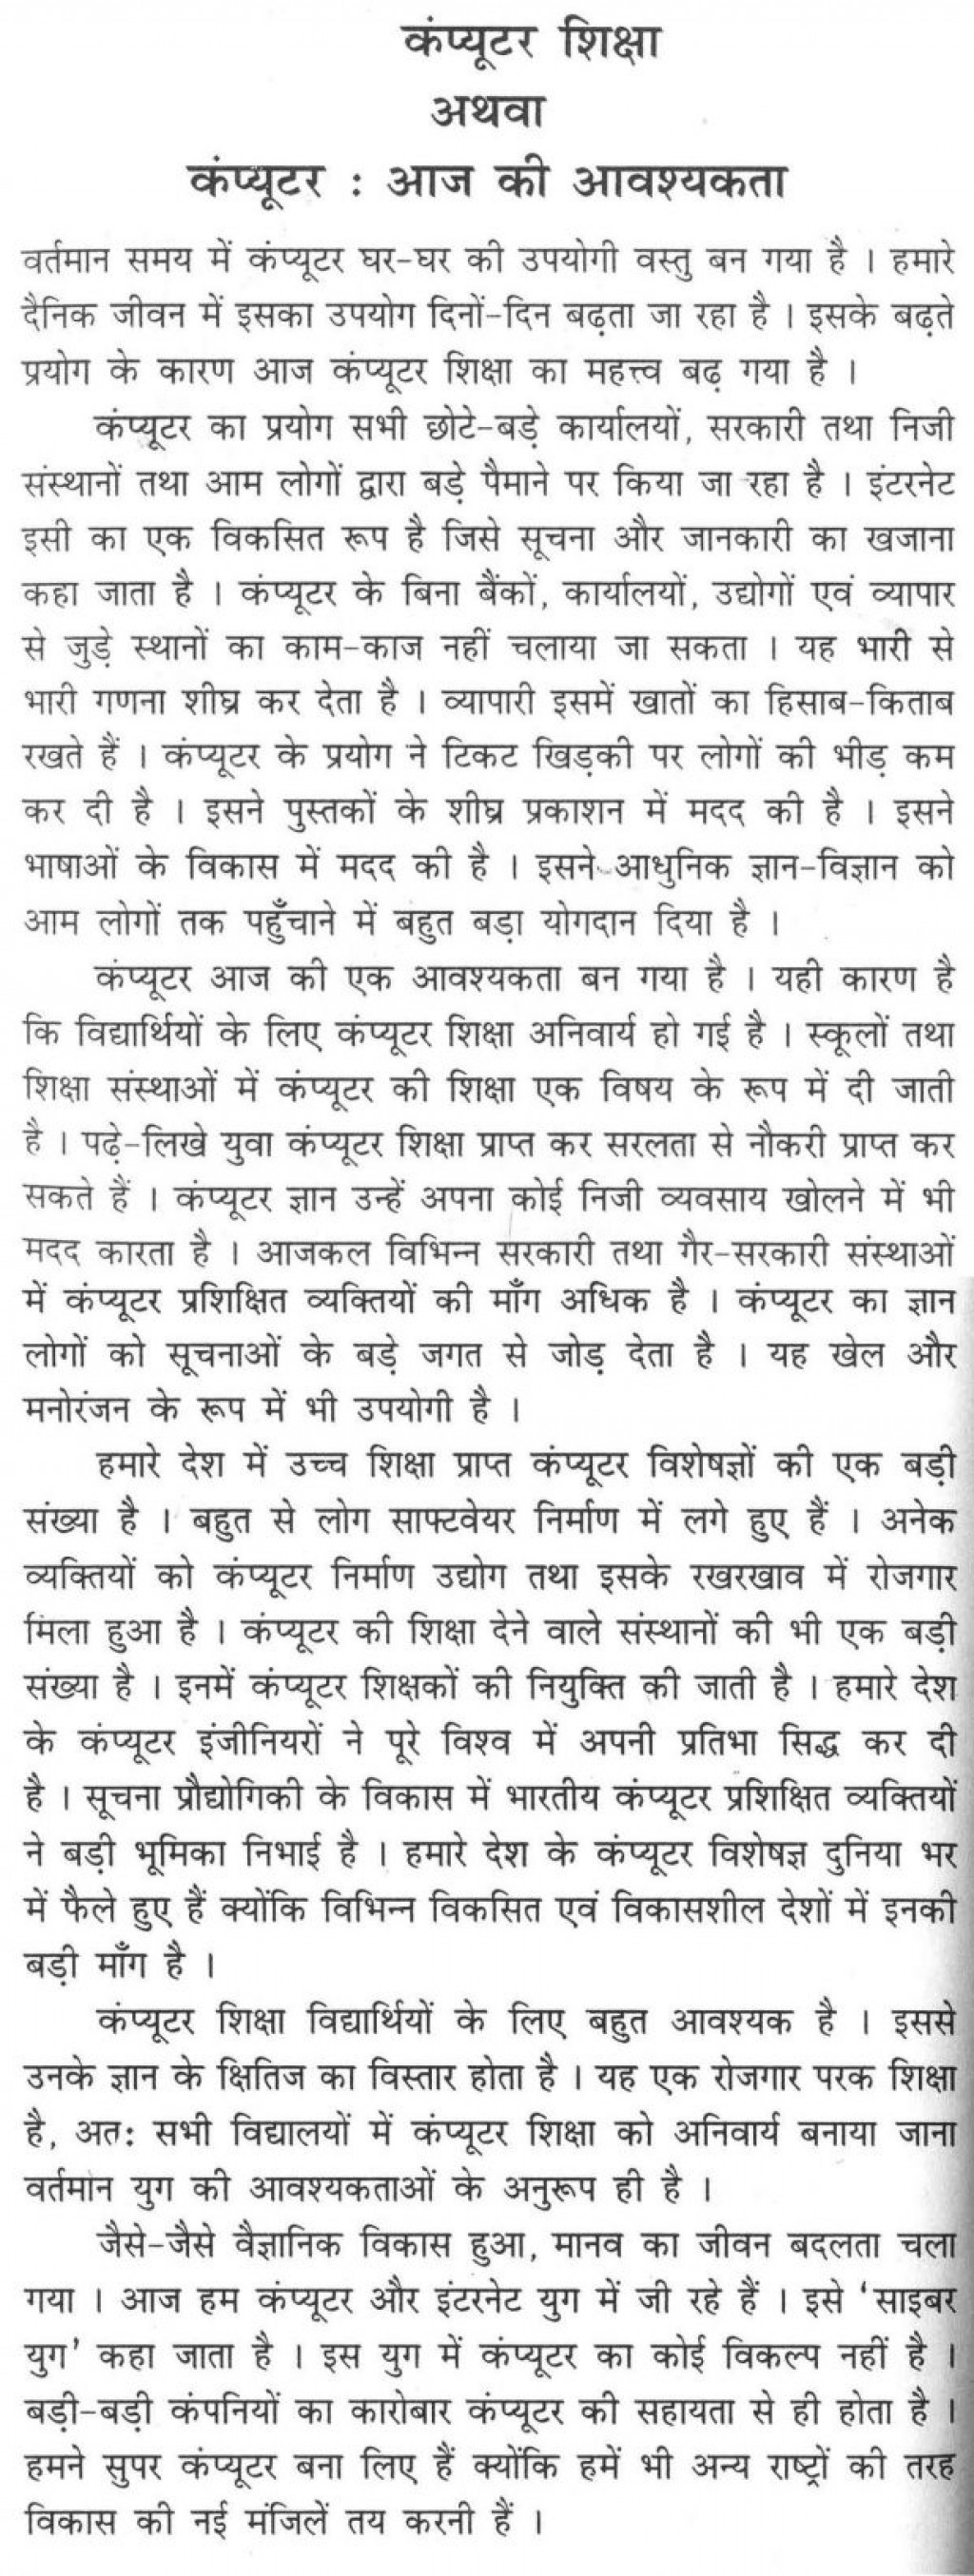 012 Essay Computer Technology Thumb Argumentative On Good Or In Hindi Education Boon Short Topics Latest Urdu Science And 618x1635 Fearsome Large